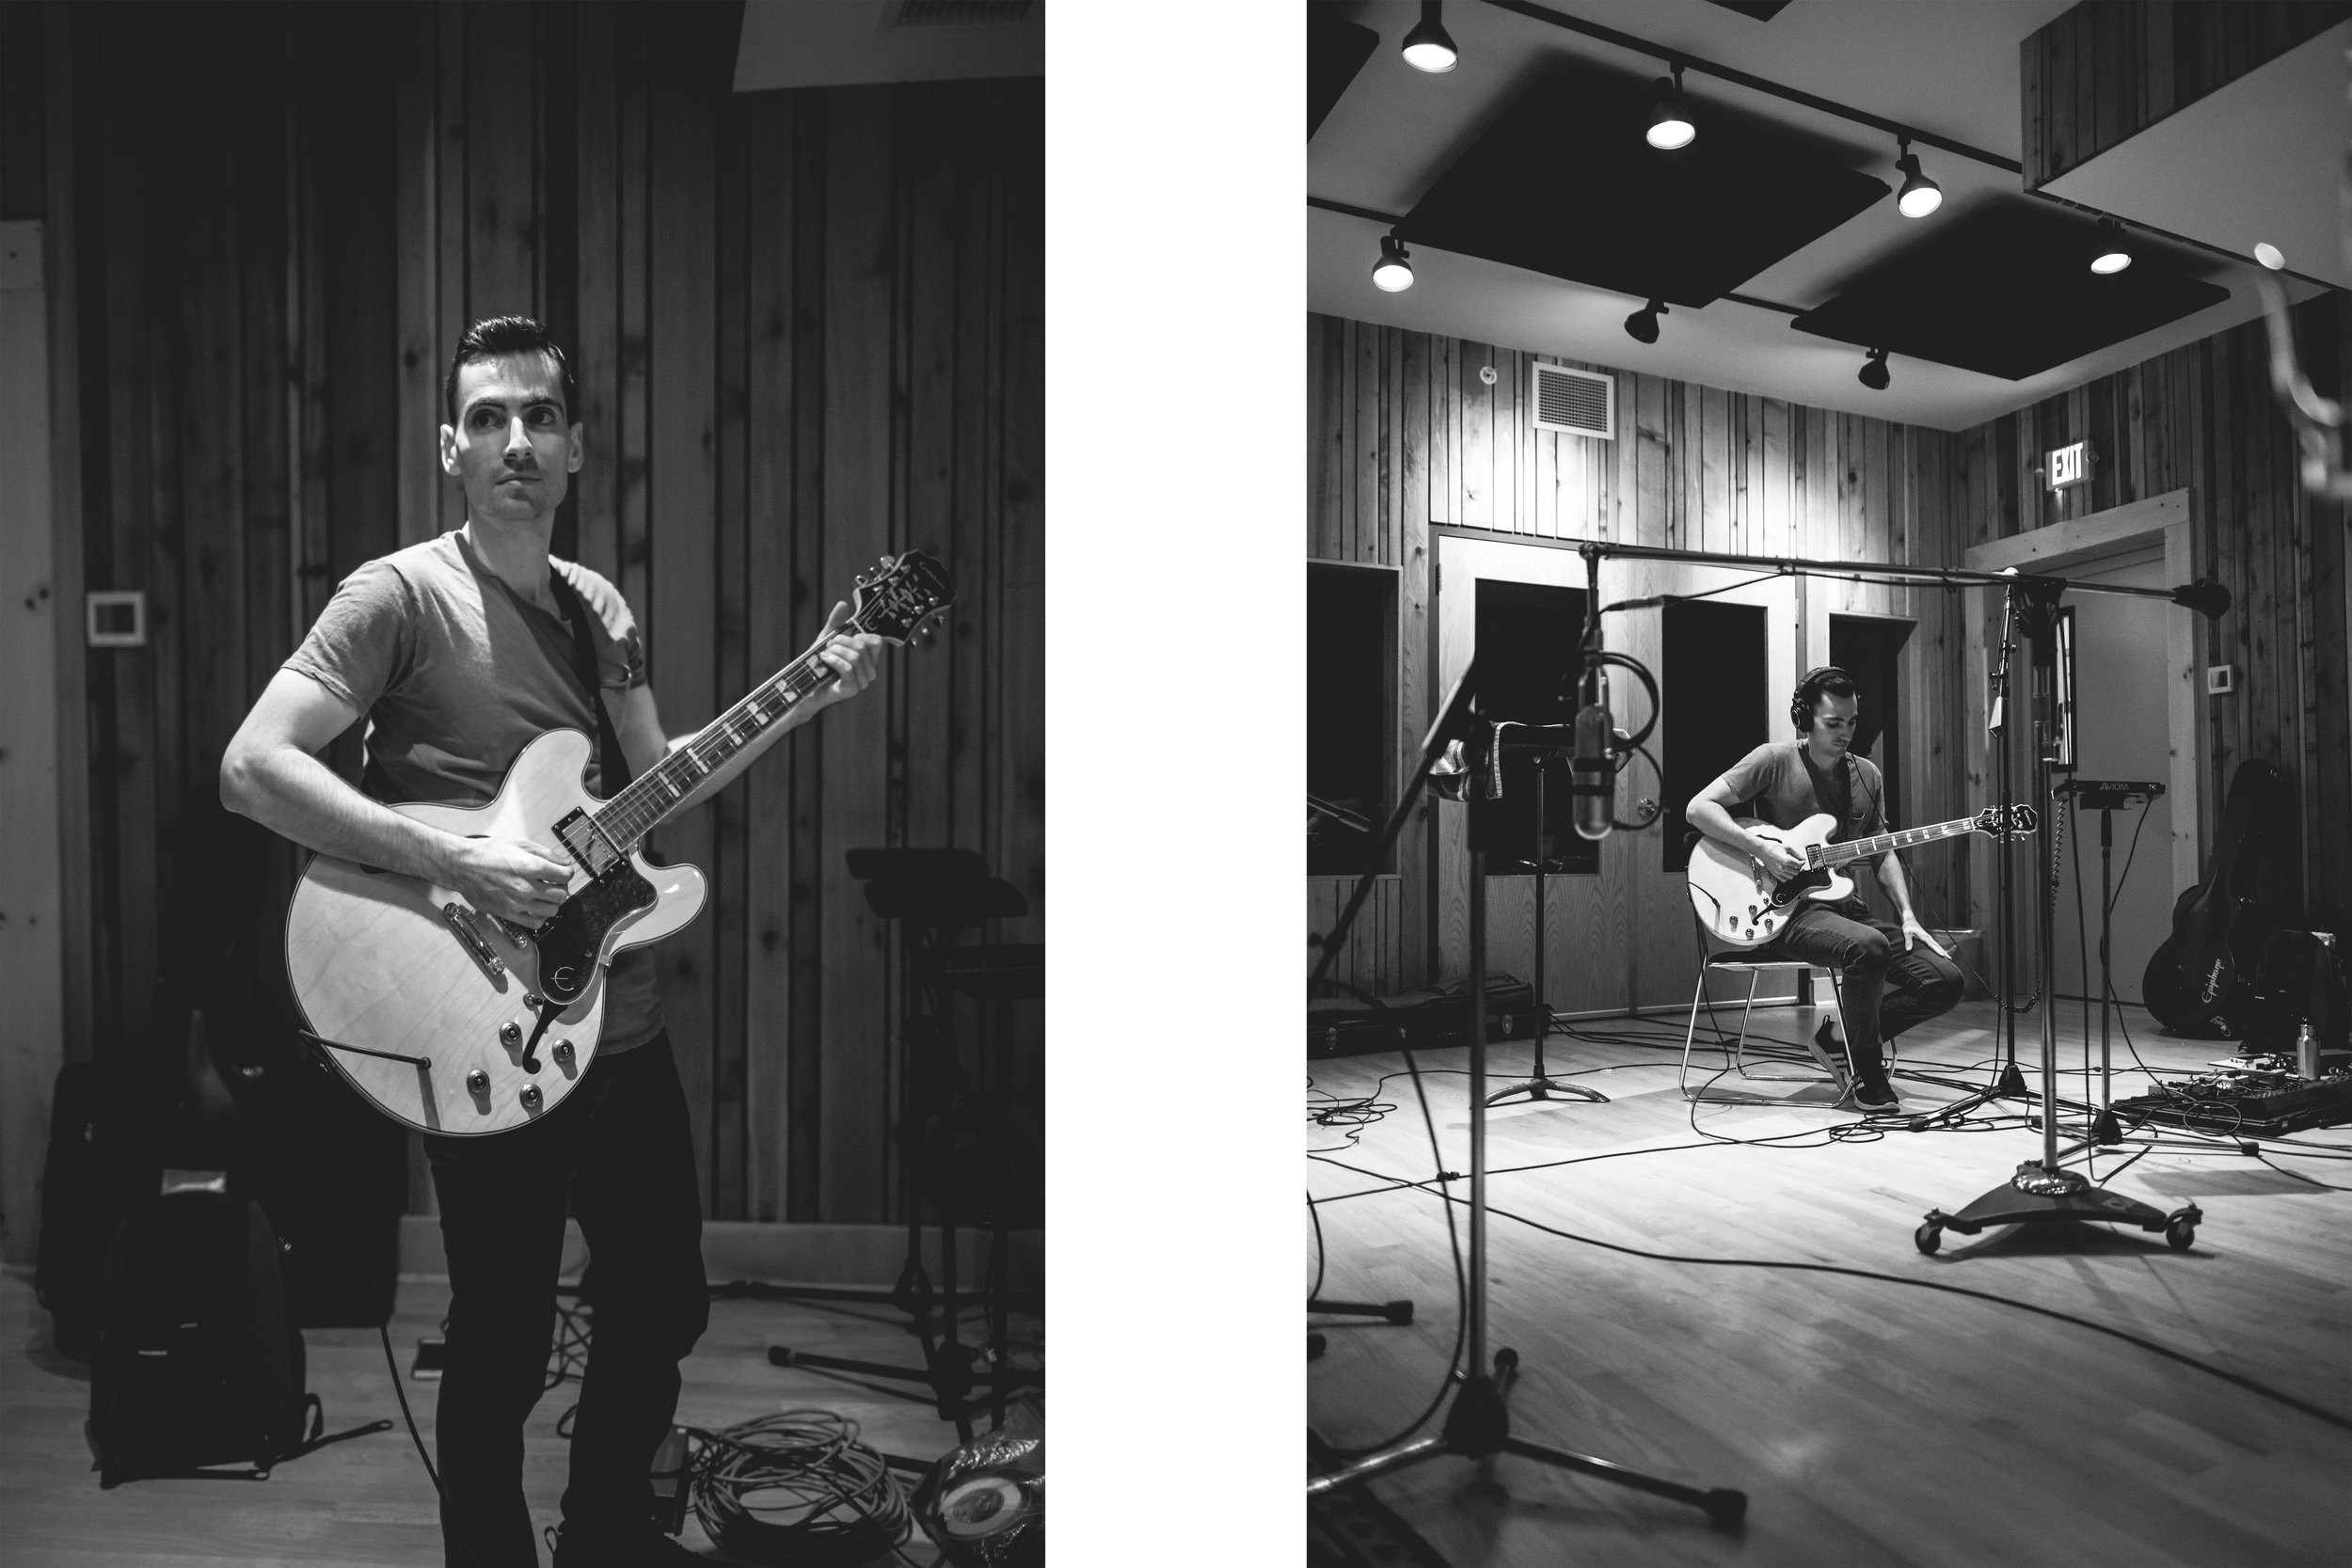 2018_07_06 Marble House Recording Combo 1.jpg